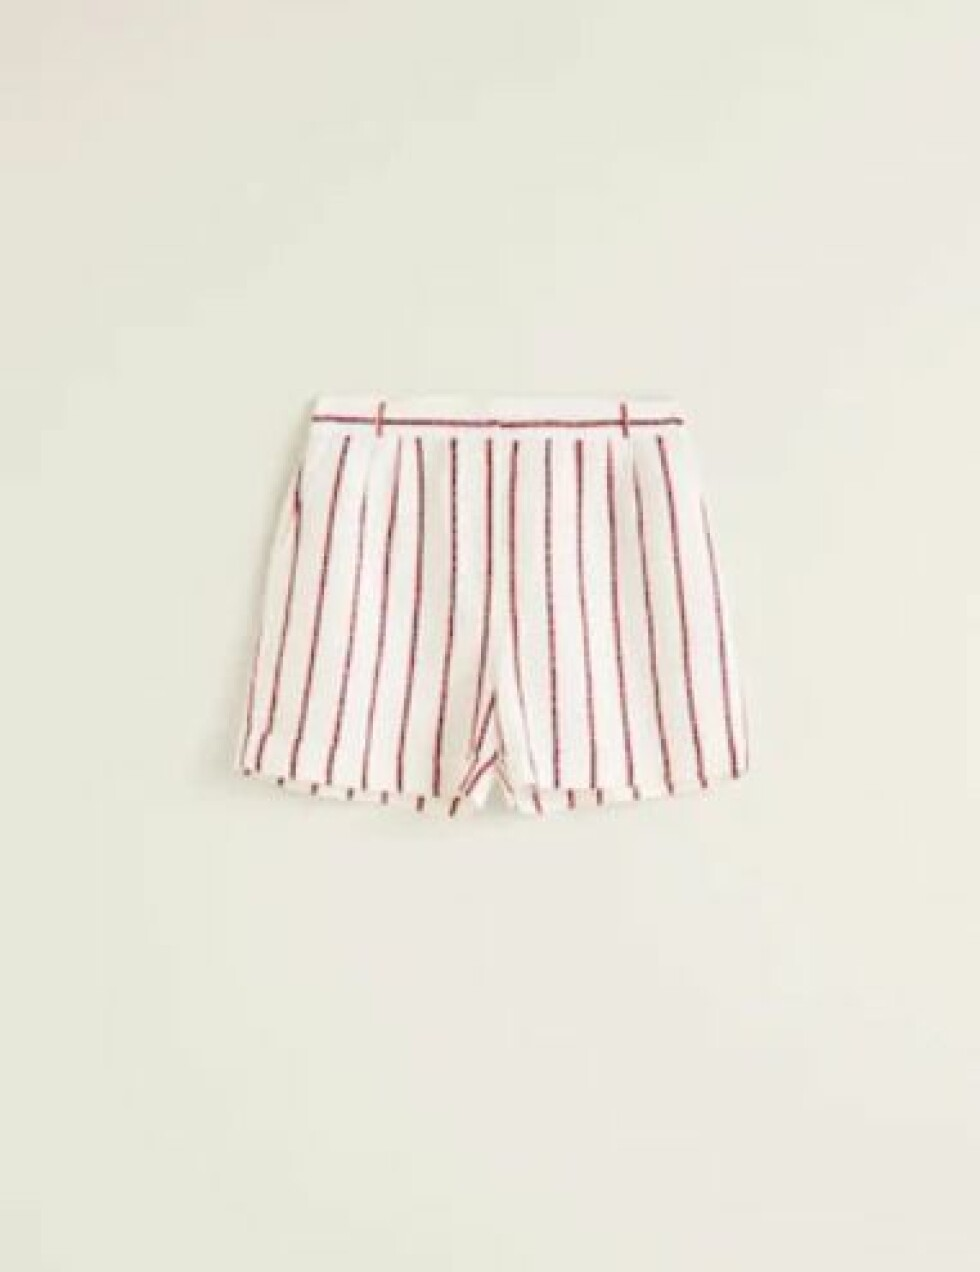 Shorts fra Mango |200,-| https://shop.mango.com/no-en/women/shorts/striped-linen-shorts_33080810.html?c=02&n=1&s=prendas.familia;22,322